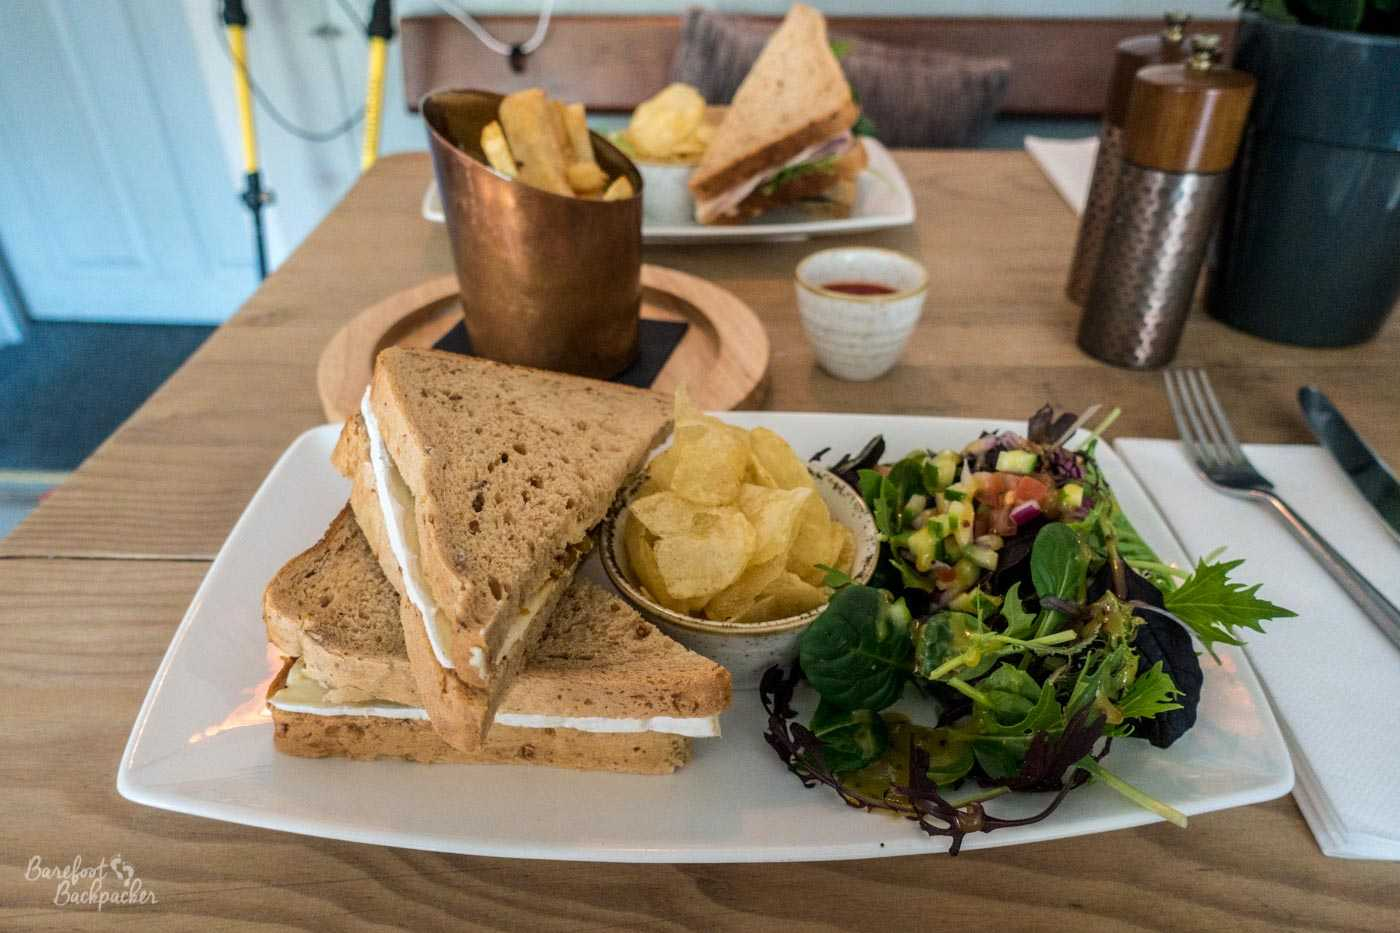 Cheese sandwiches, a bowl of crisps, and some leafy salad are on a white rectangular plate with curved edges, on a wooden table. Behind is a metal cylinder of chips, a small ceramic pot of sauce, and some large salt and pepper shakers. A similar plate with sandwiches and crisps is blurry in the background.